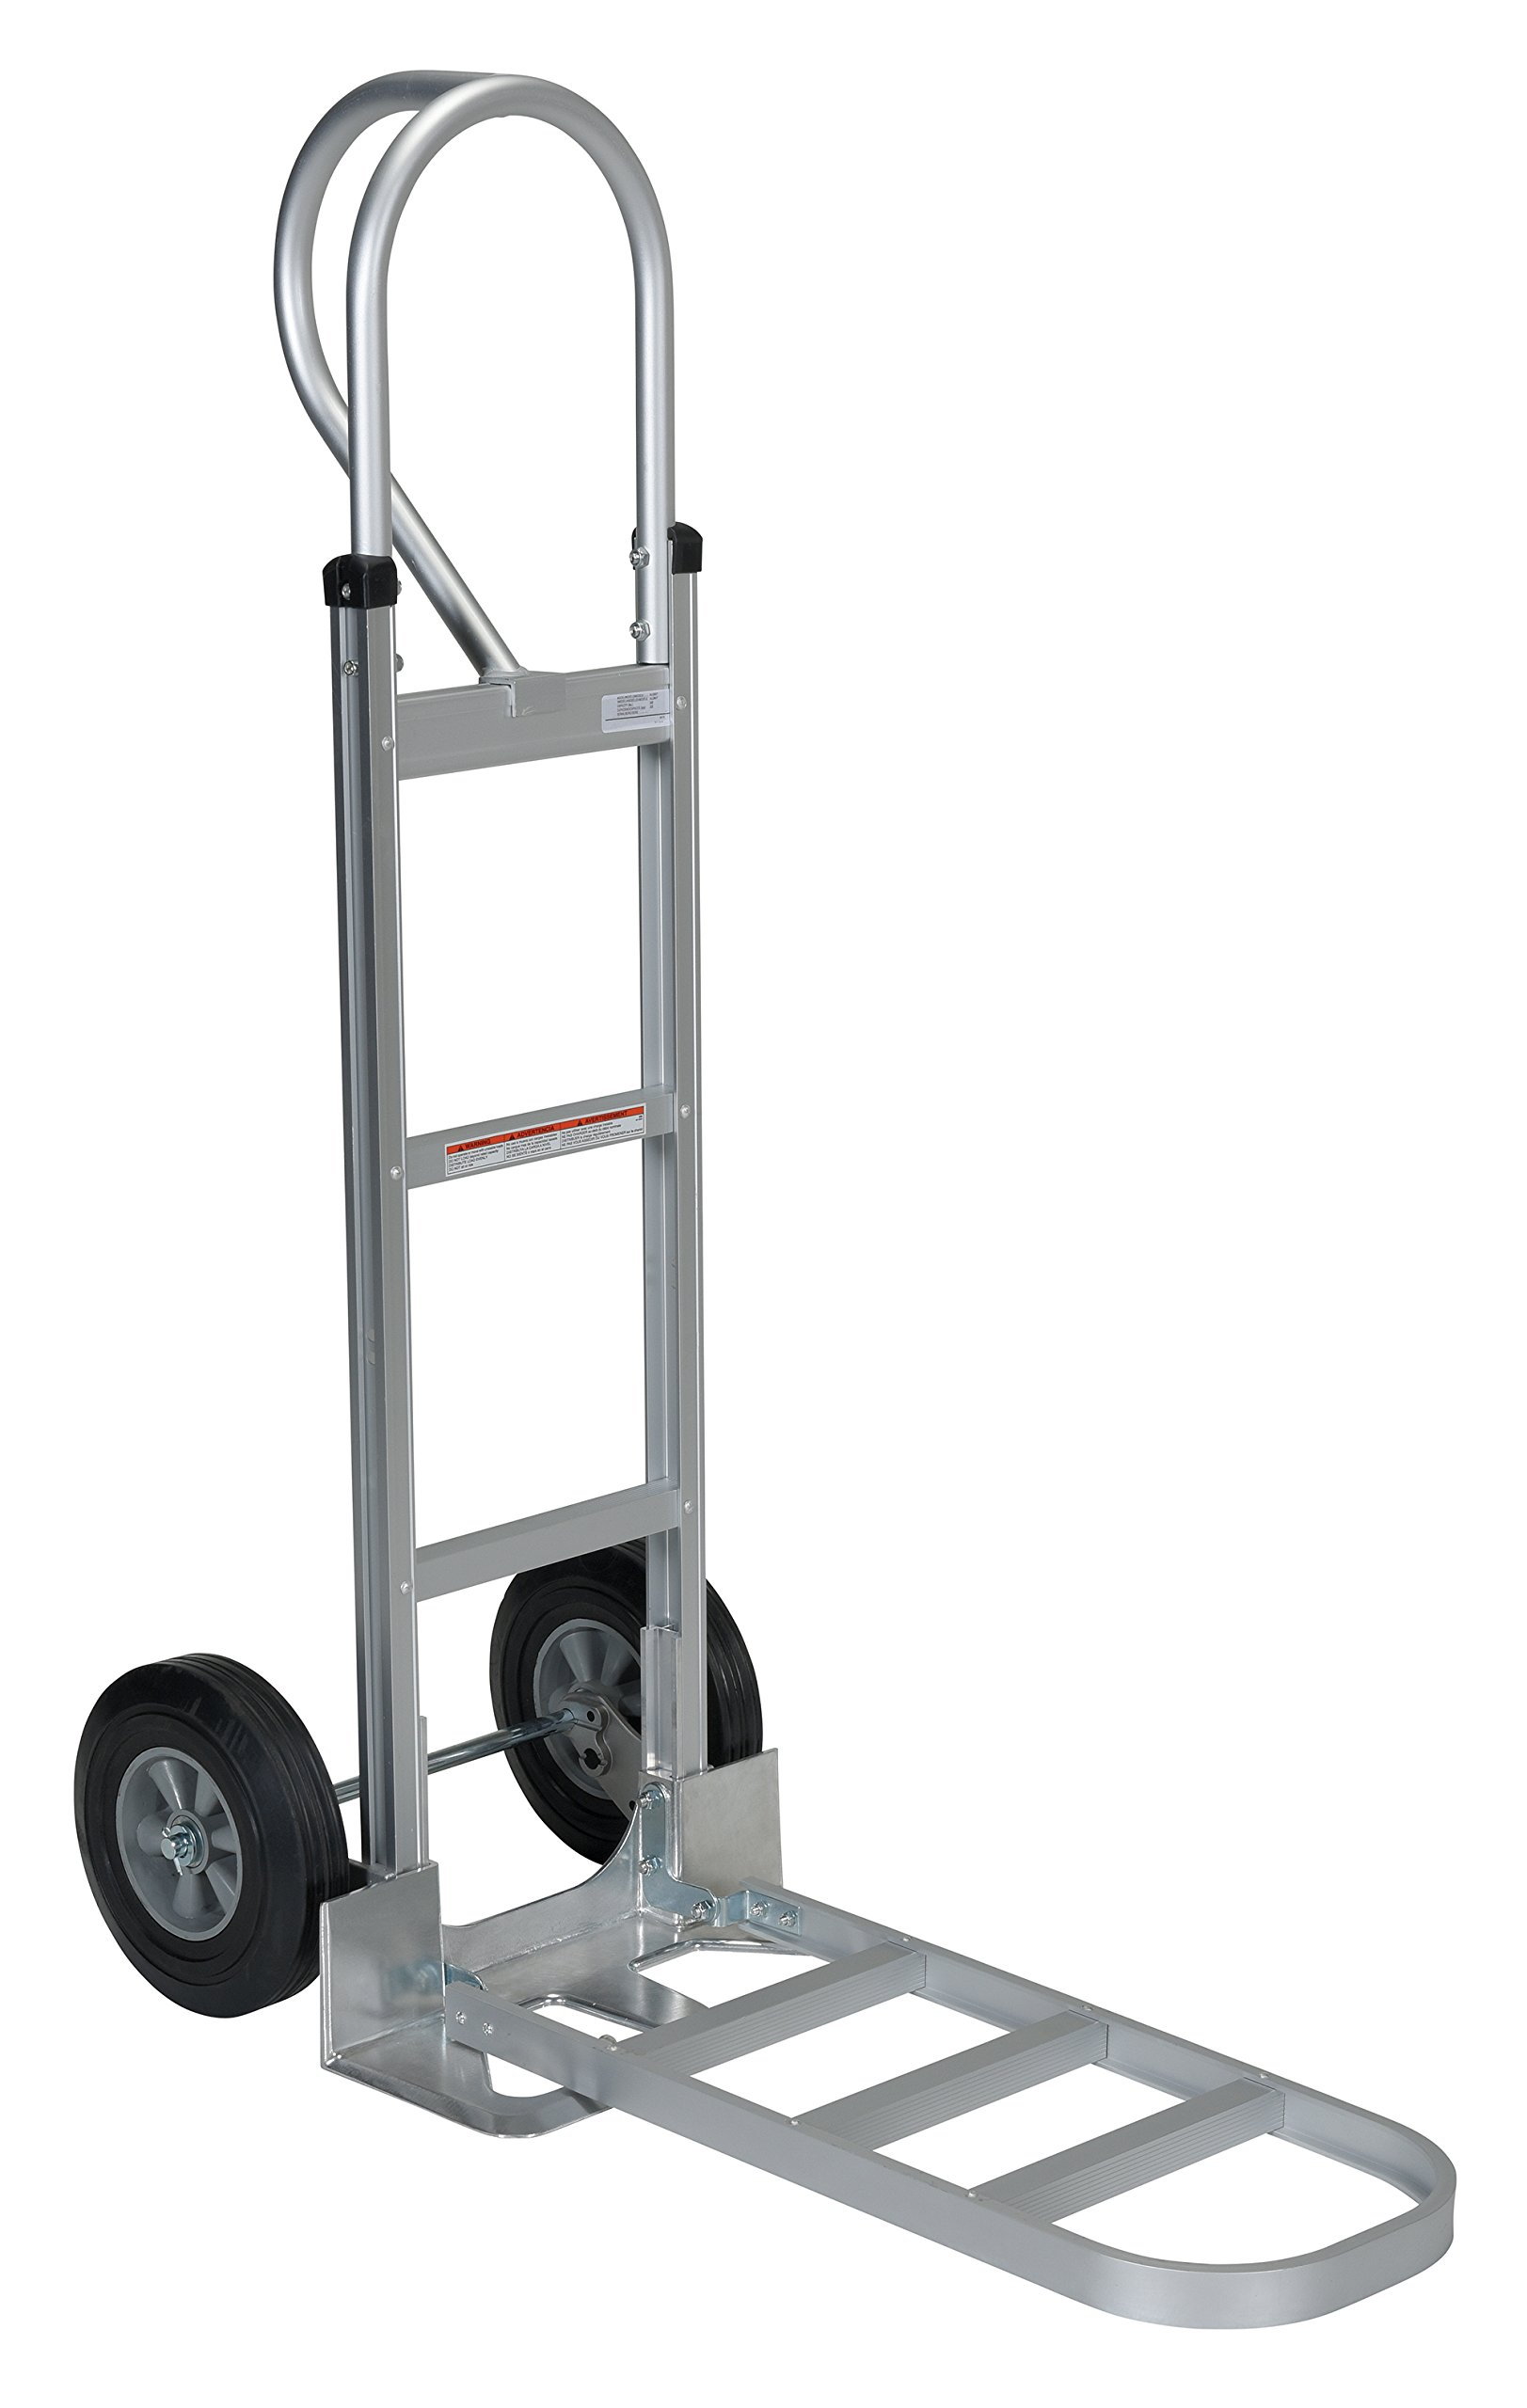 Vestil APHT-500A-HR Aluminum Hand Truck with P Handle, Rubber Wheels, 500 lbs Load Capacity, 50-1/2'' Height, 20'' Width X 19'' Depth by Vestil